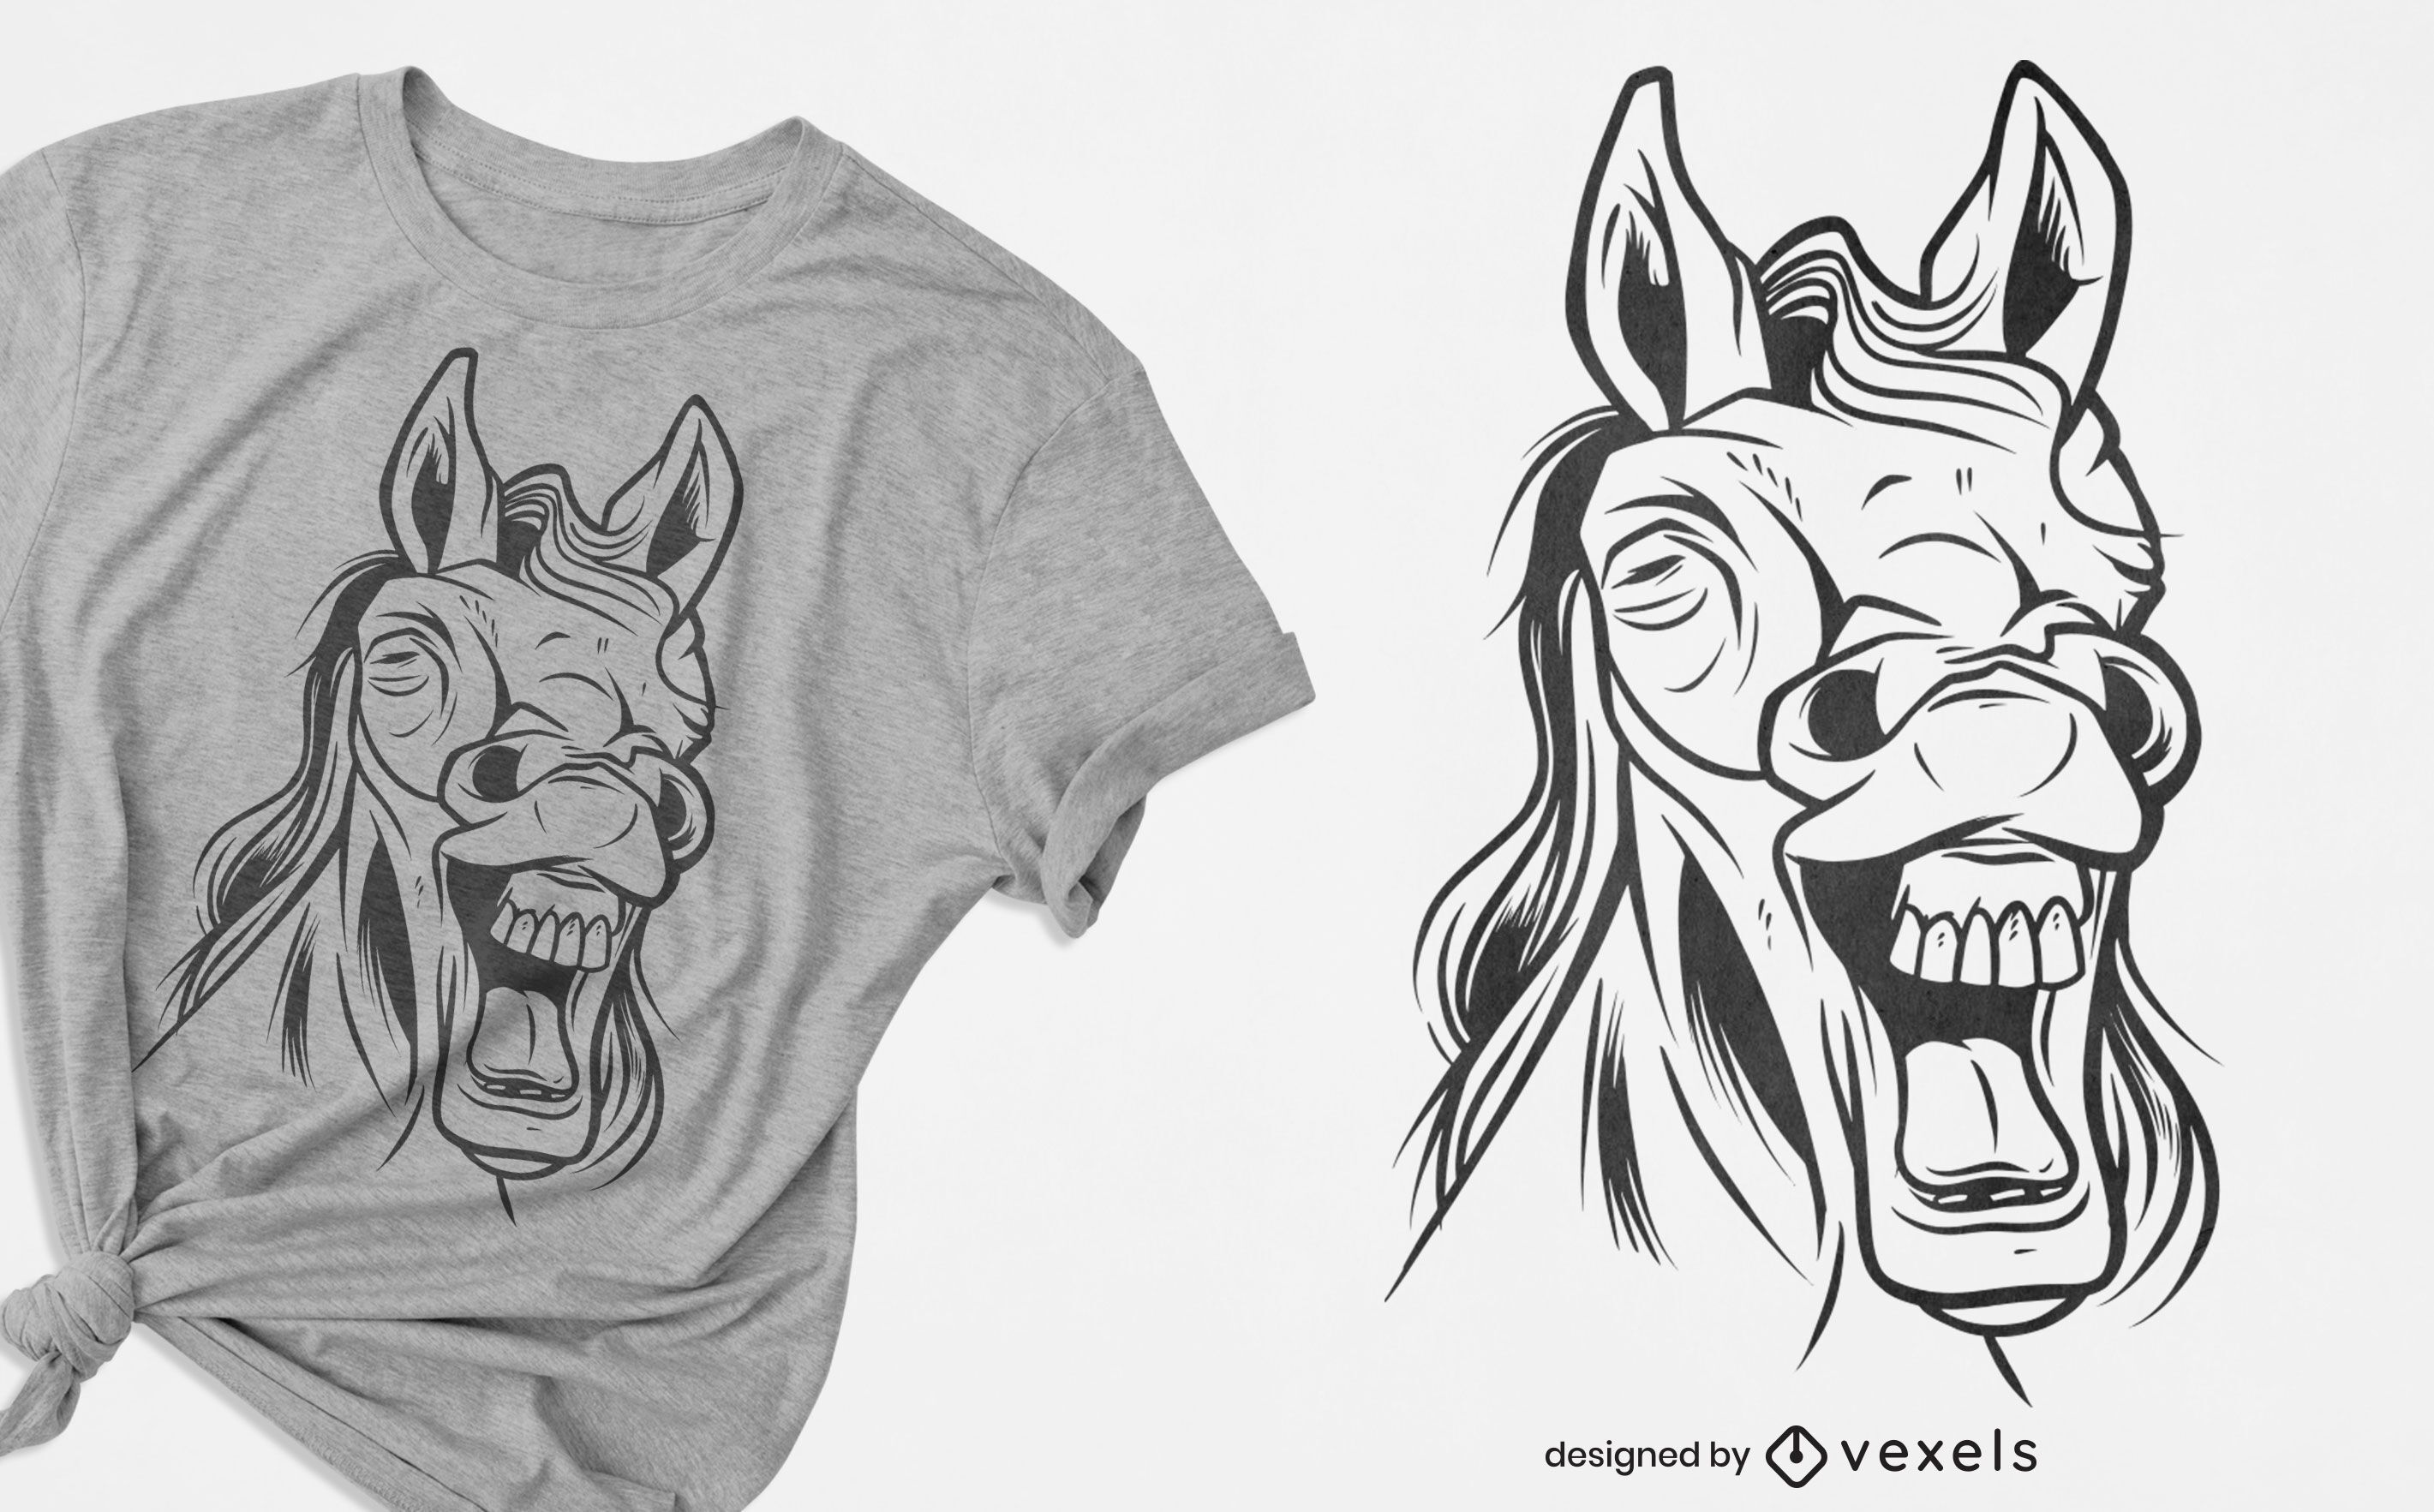 REQUEST Laughing horse t-shirt design